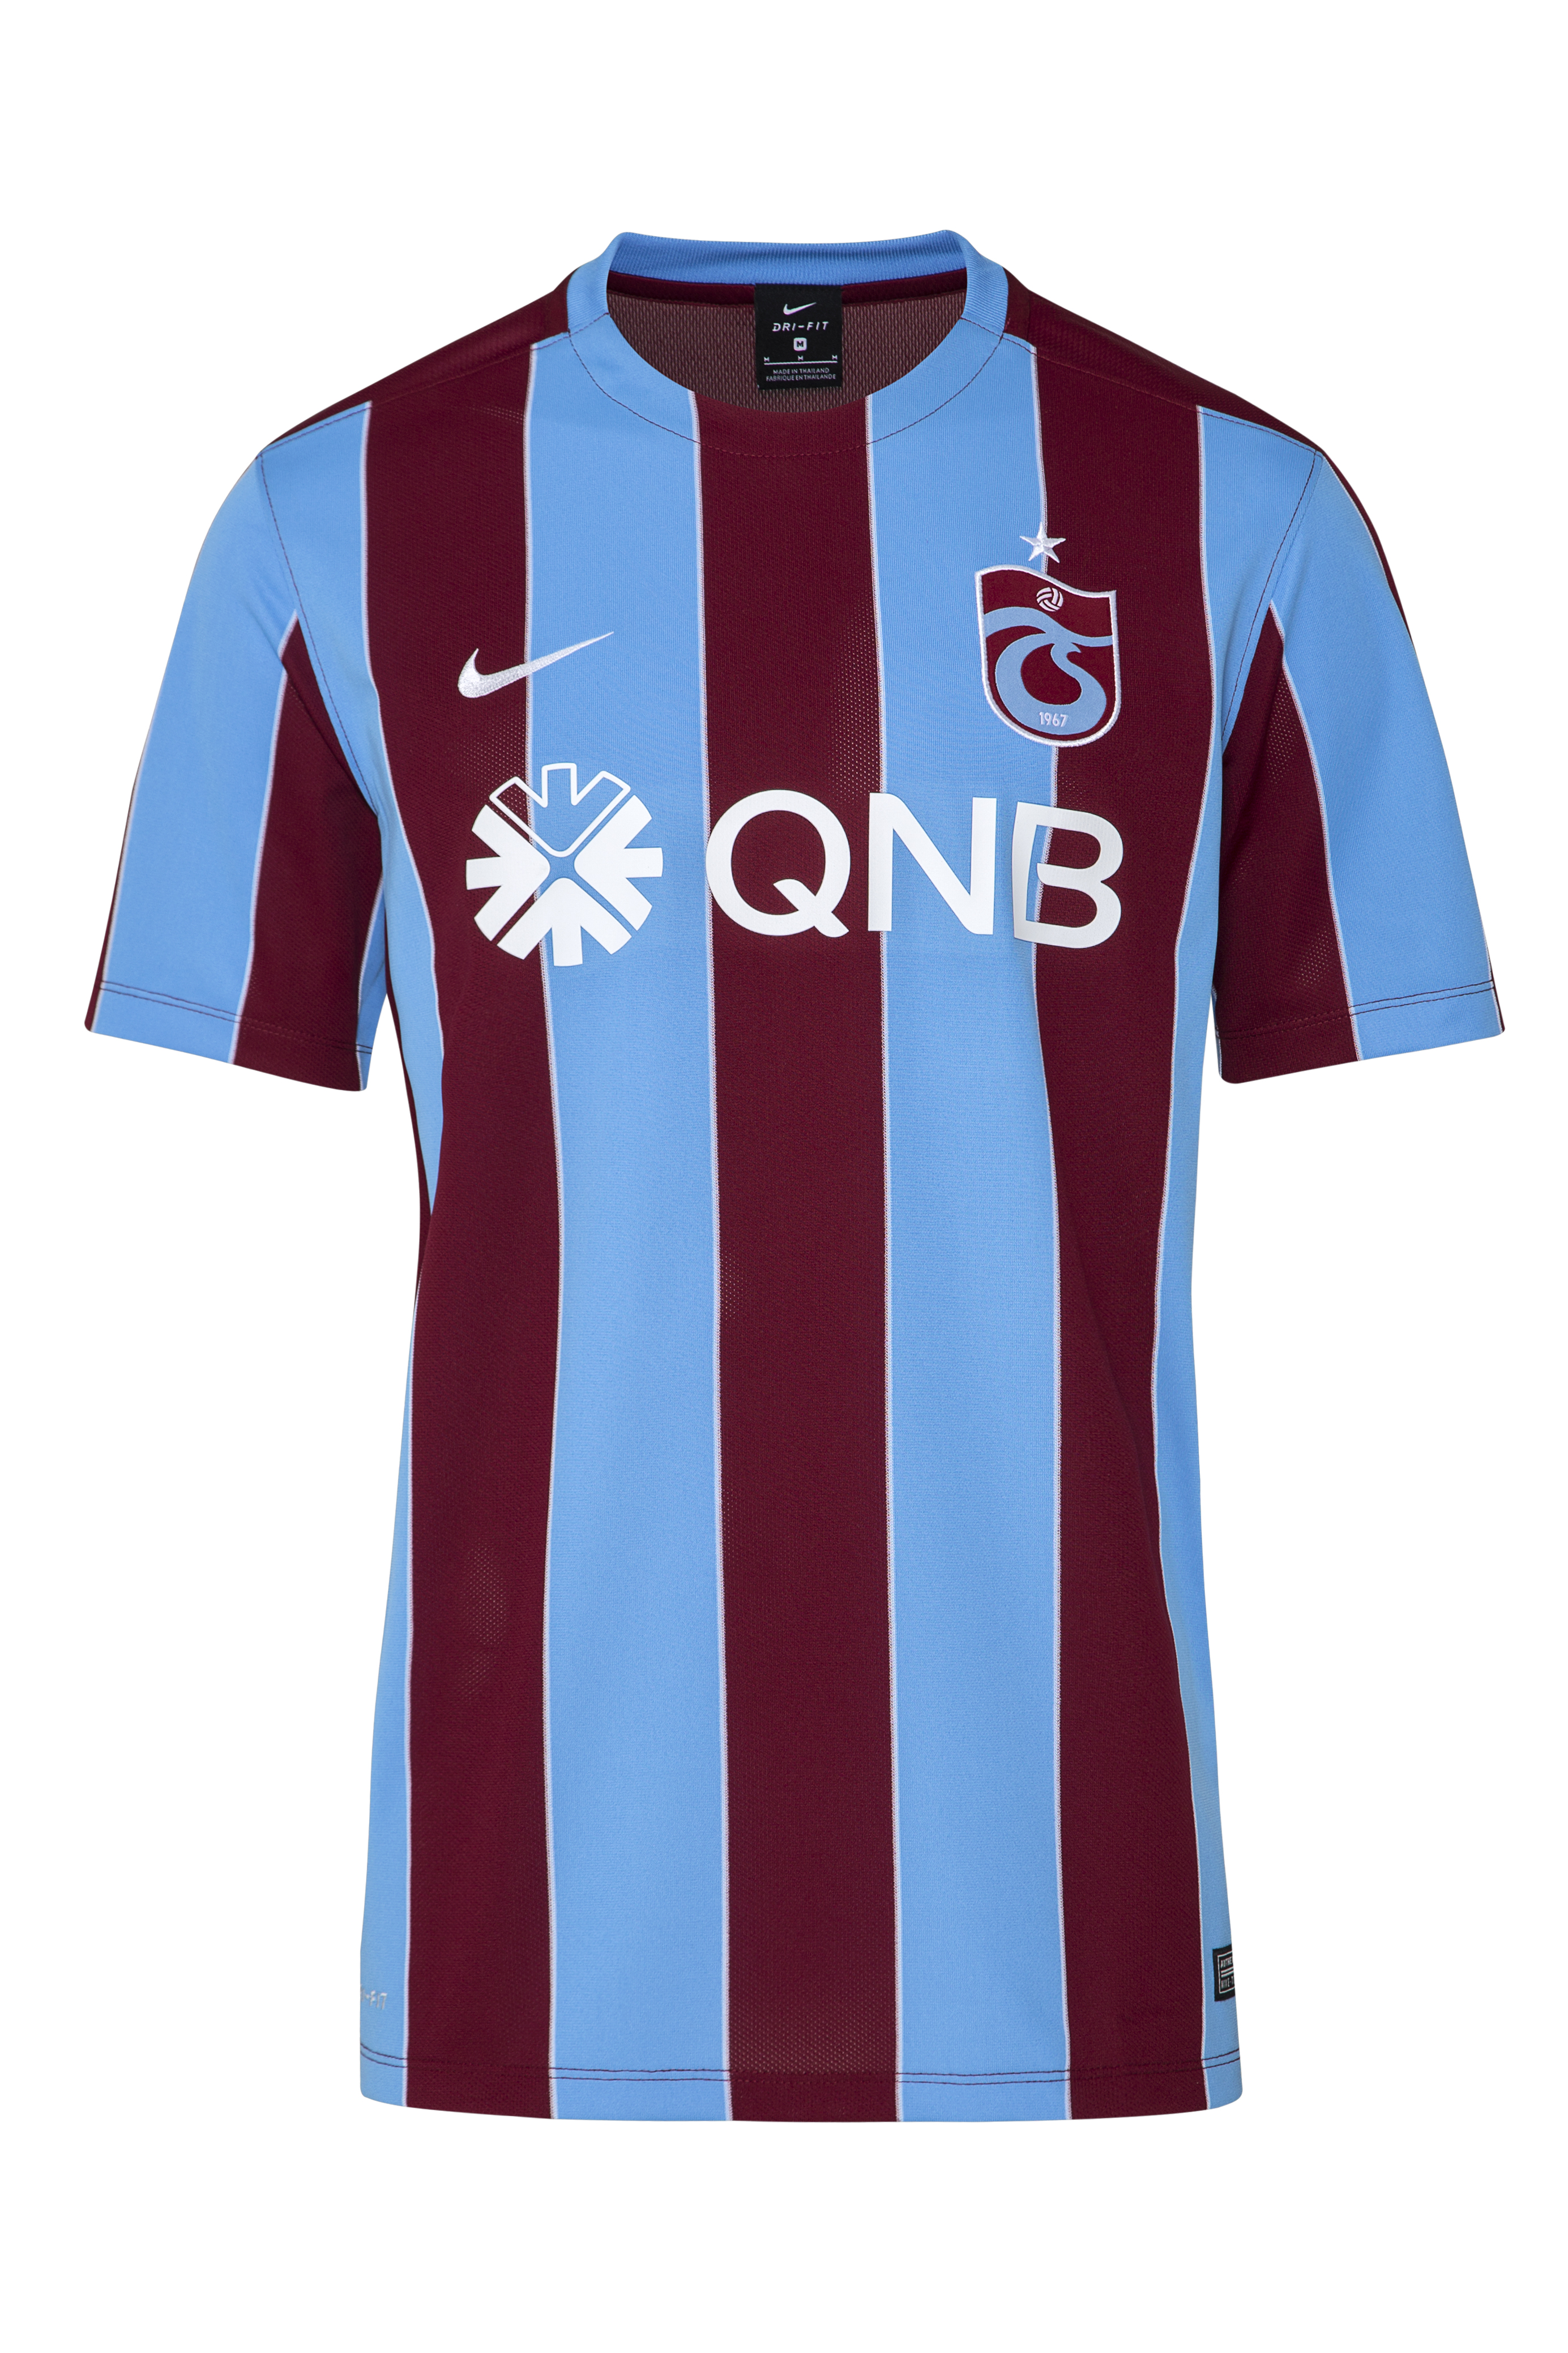 5f05fc57291 Kits | Trabzonspor Club Official Website